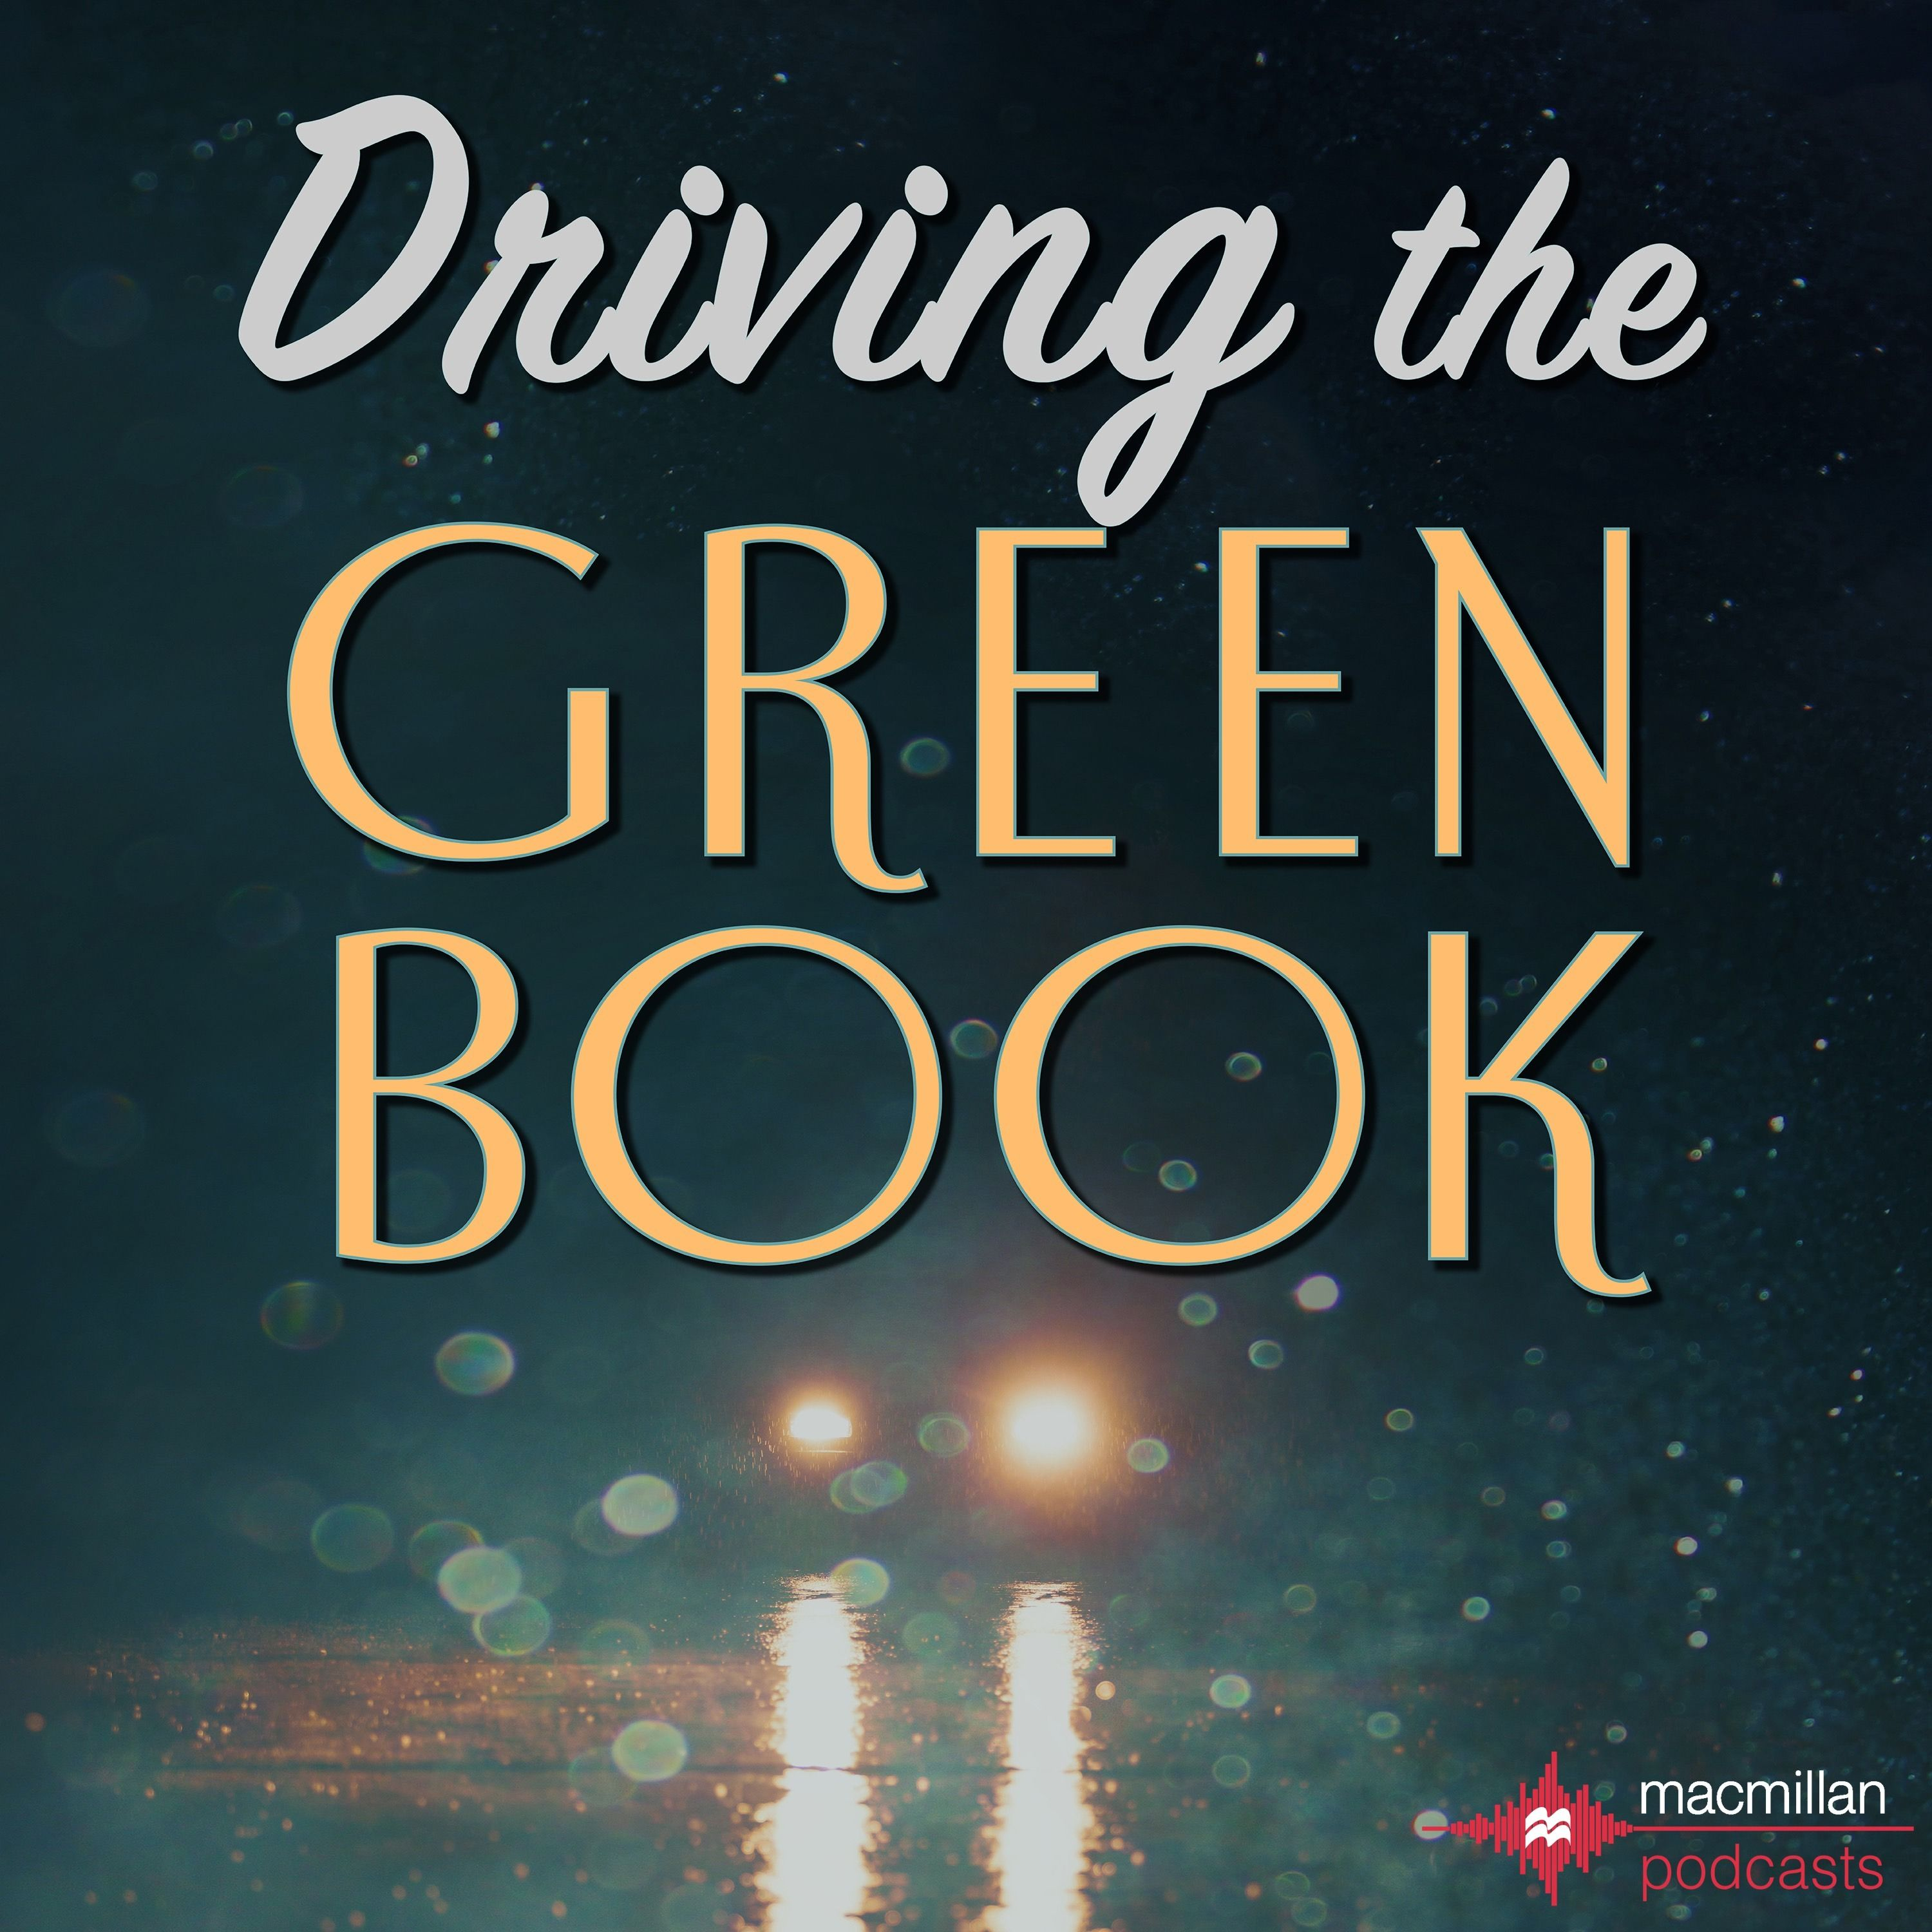 Introducing Driving the Green Book